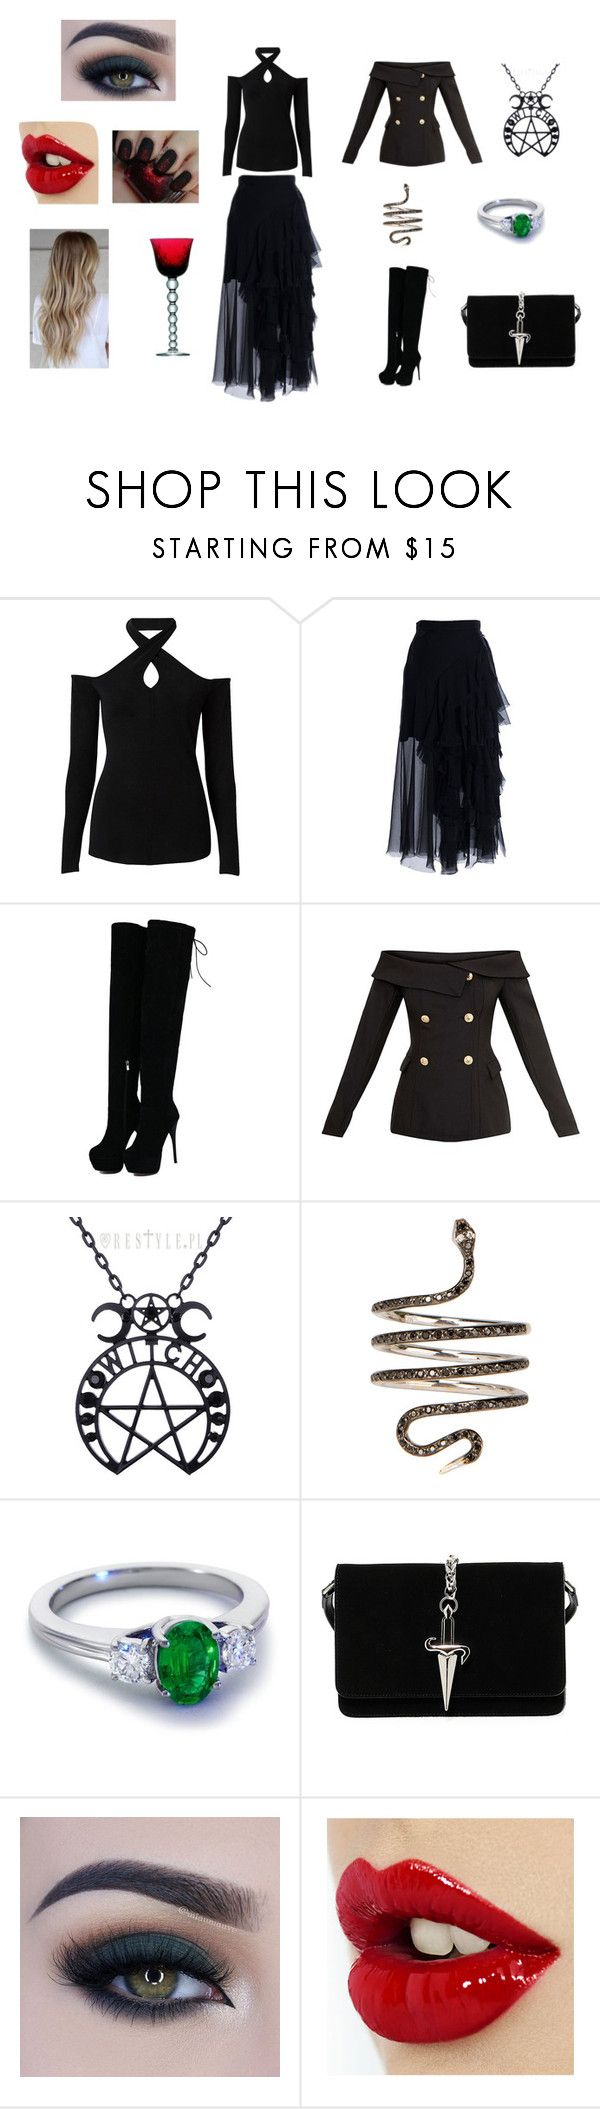 """""""The Witching Hour"""" by mystikskays ❤ liked on Polyvore featuring Witchery, Parlor, Ileana Makri, Blue Nile, Cesare Paciotti, Too Faced Cosmetics and Saint Louis"""